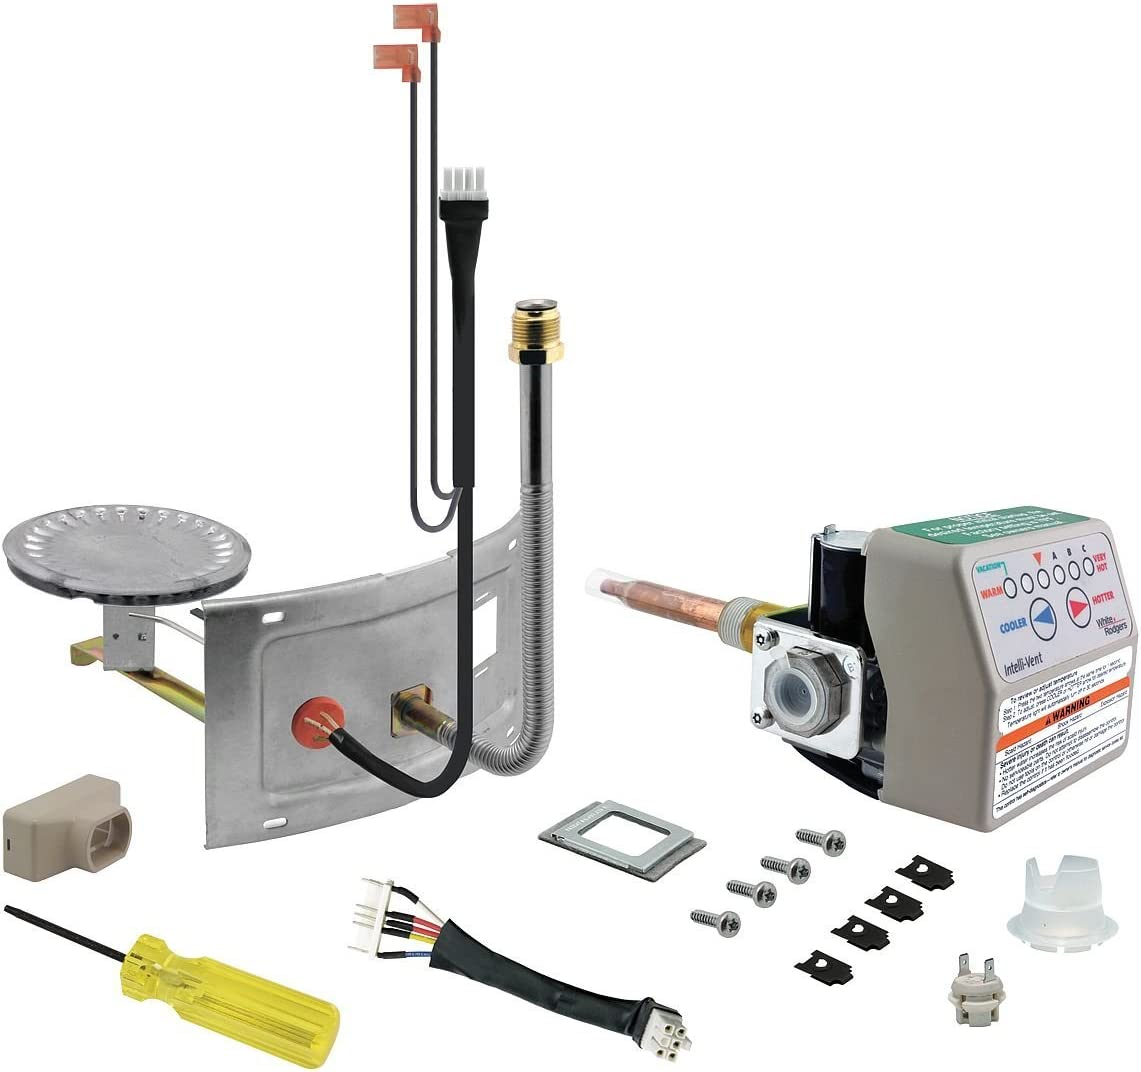 Rheem SP20170A Water Heater Gas Control Thermostat/Burner Assembly Retrofit Kit - Natural Gas